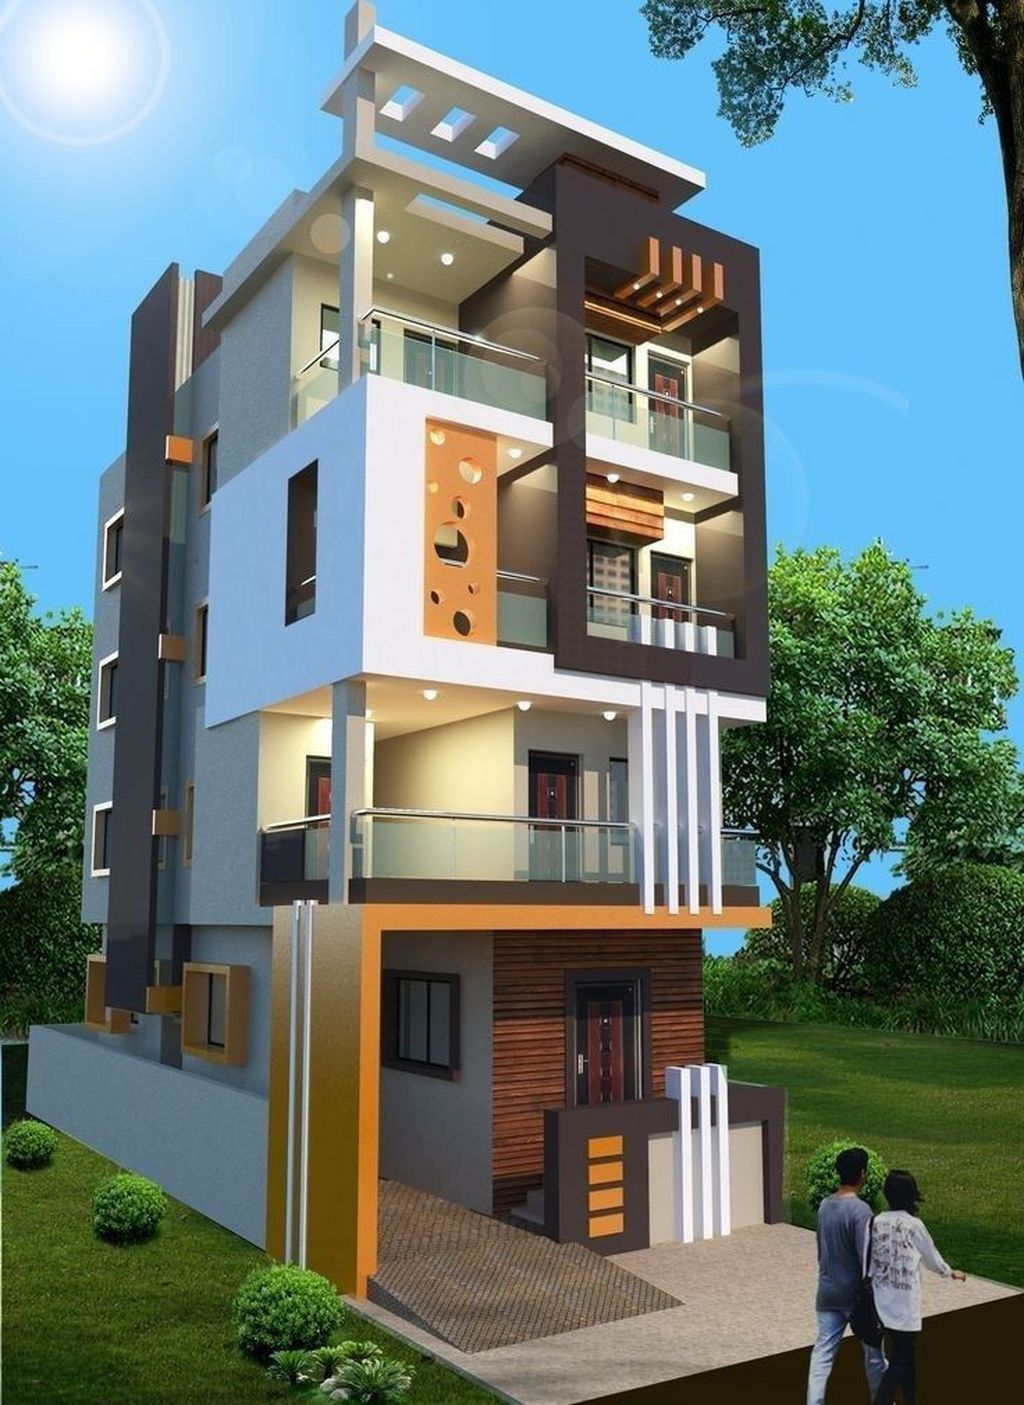 Simple Village Home Design 3d Decorating Ideas Cute766 House home designs for villages in india indian village. design 3d decorating ideas